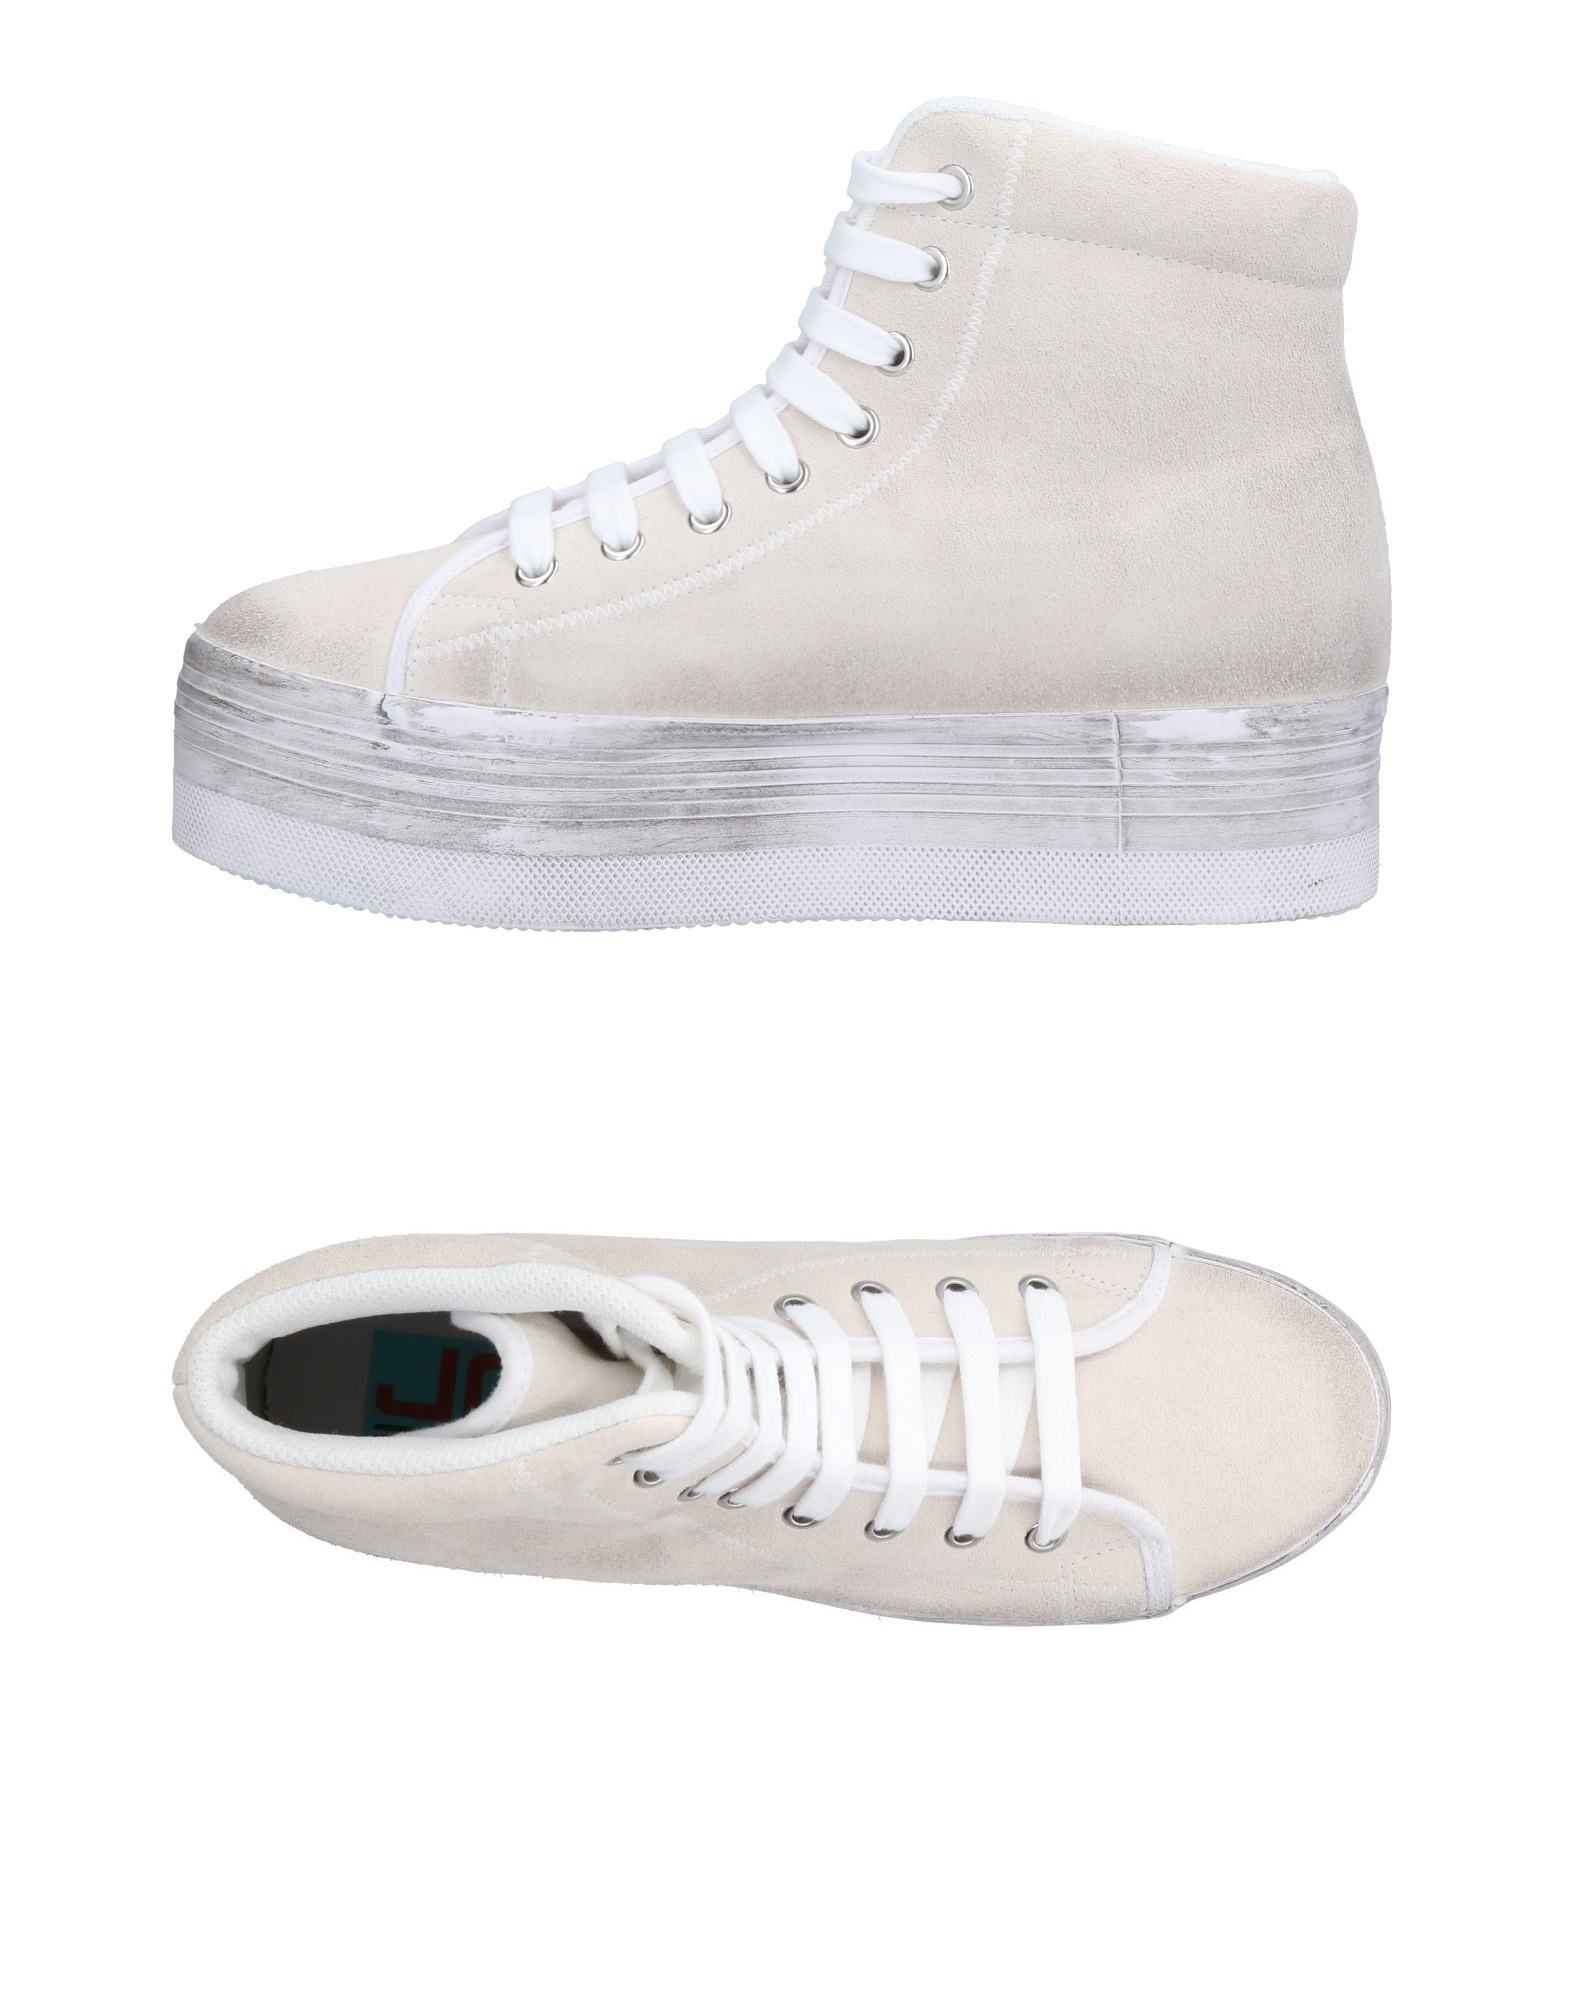 JC PLAY BY JEFFREY CAMPBELL Sneakers in Light Grey